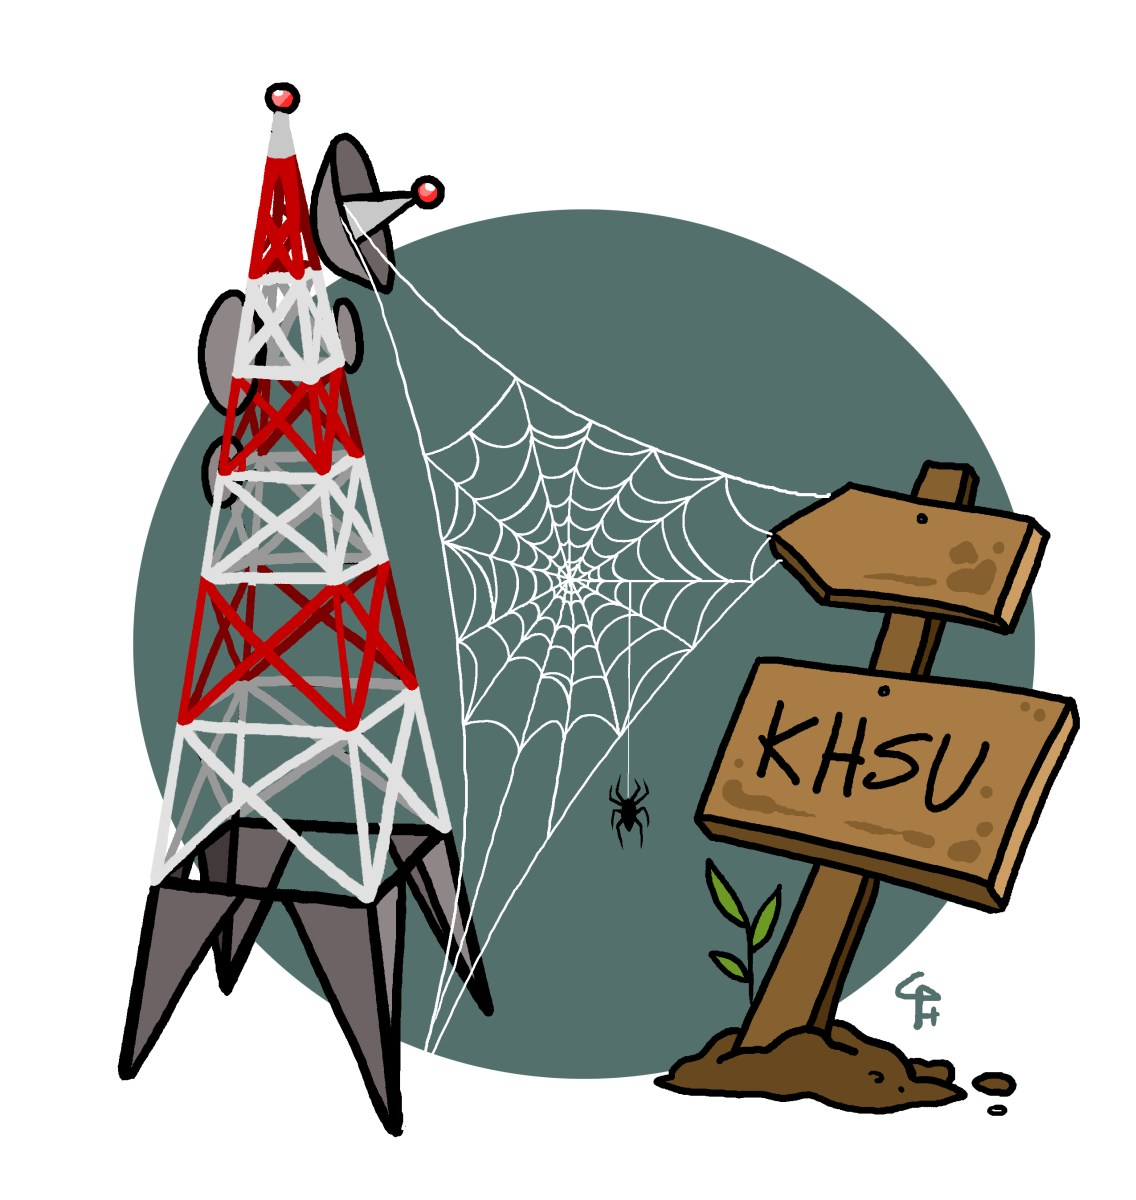 EDITORIAL: We stand with KHSU